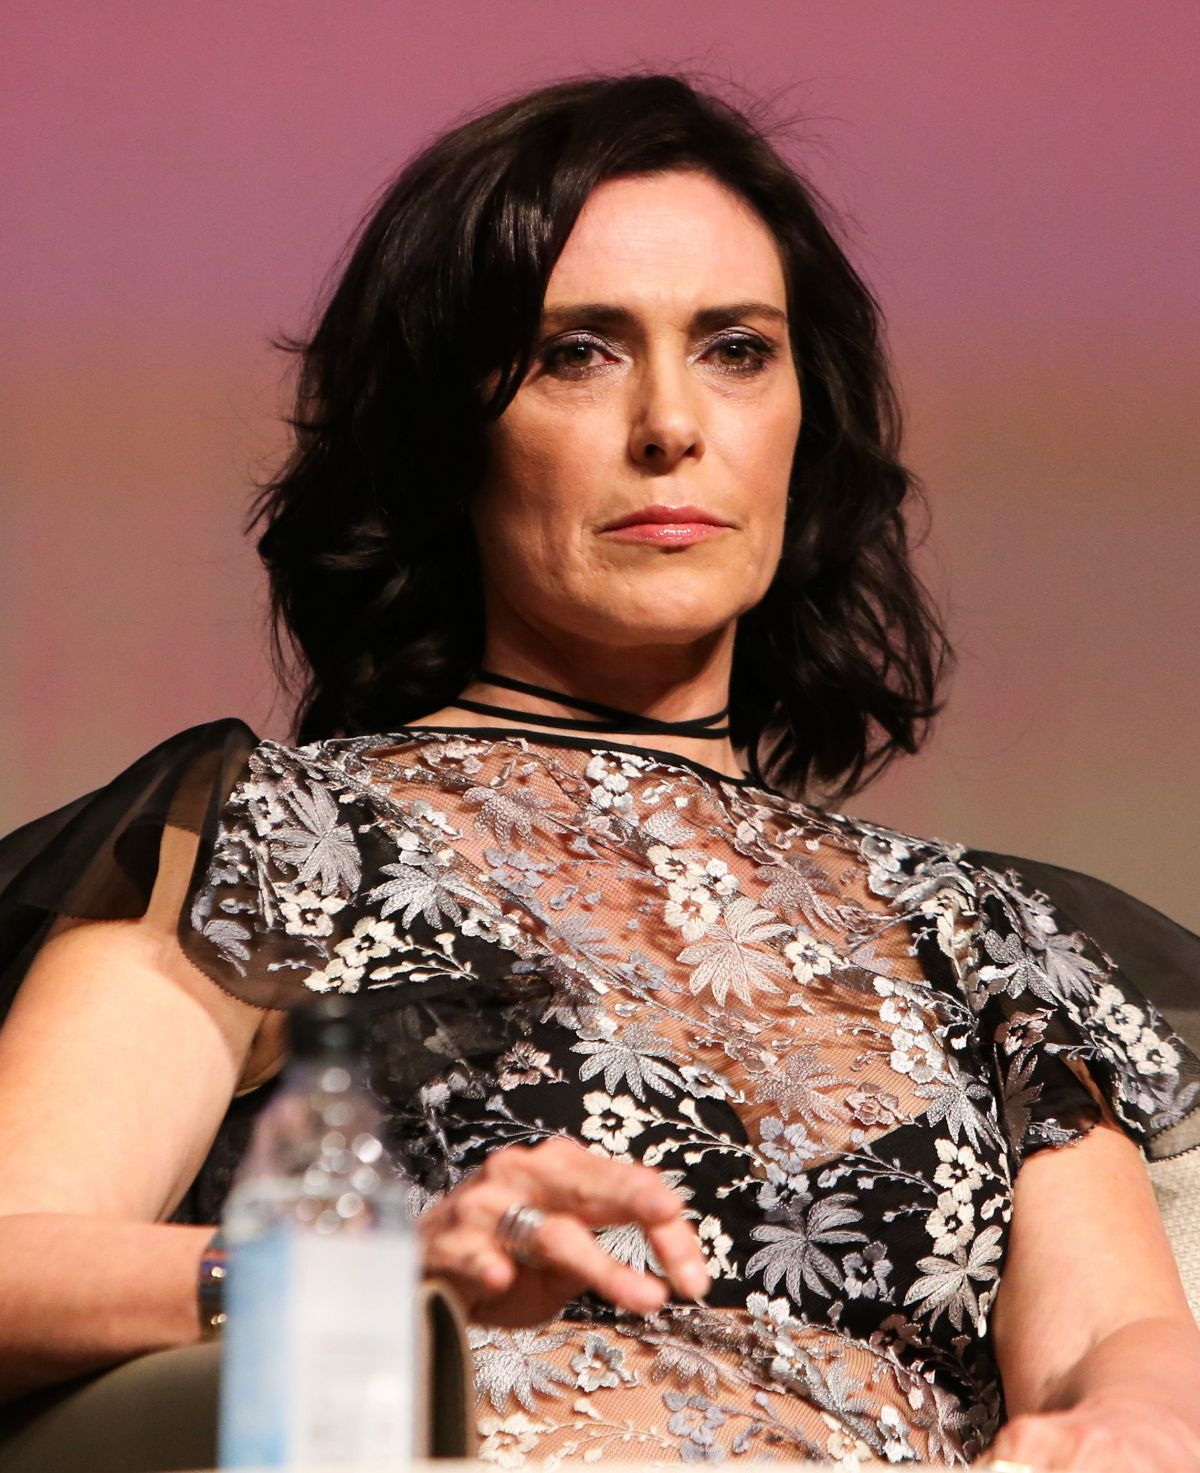 MICHELLE FORBES at Contenders Emmys Presented by Deadline ... Michelle Forbes Birthday